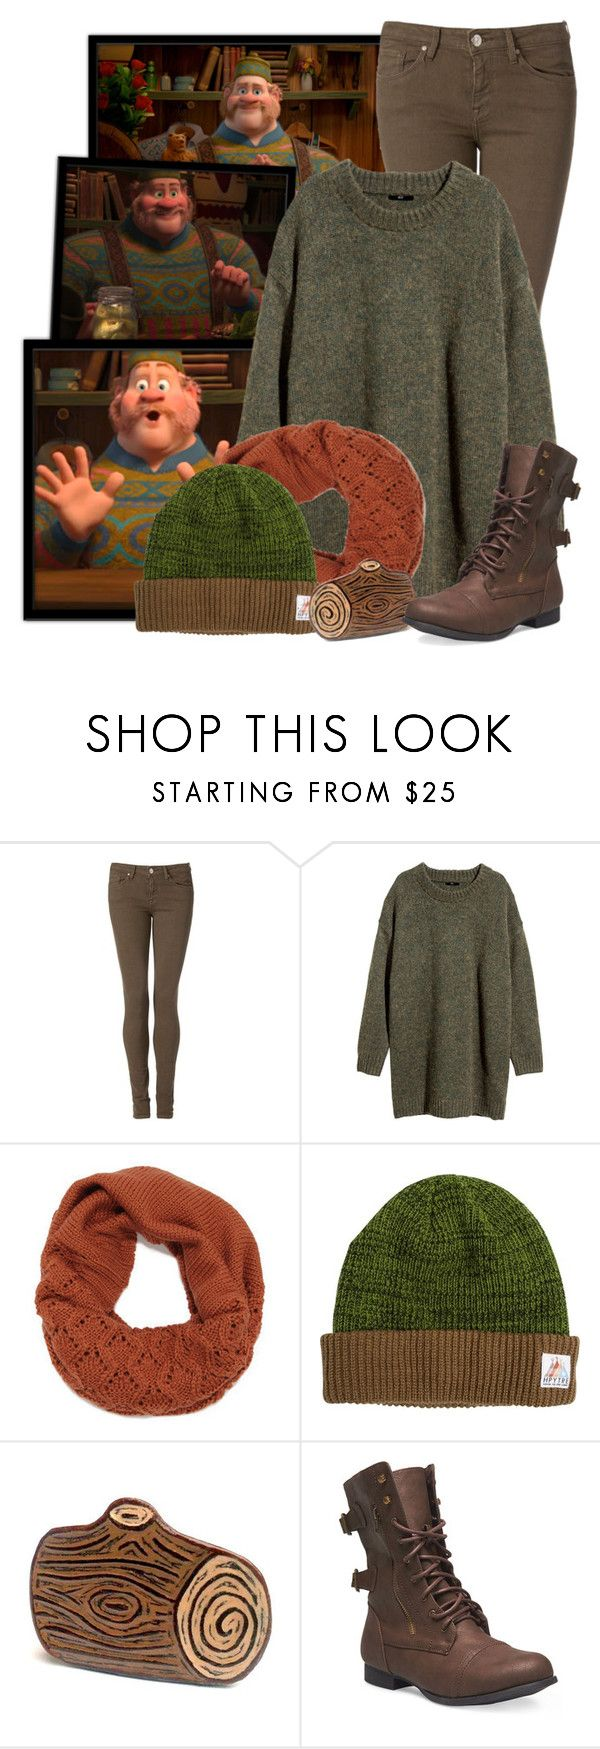 """Oaken - Frozen"" by totallytrue ❤ liked on Polyvore featuring Disney, Tommy Hilfiger, H&M, HippyTree, Wet Seal, disney, disneybound and frozen"